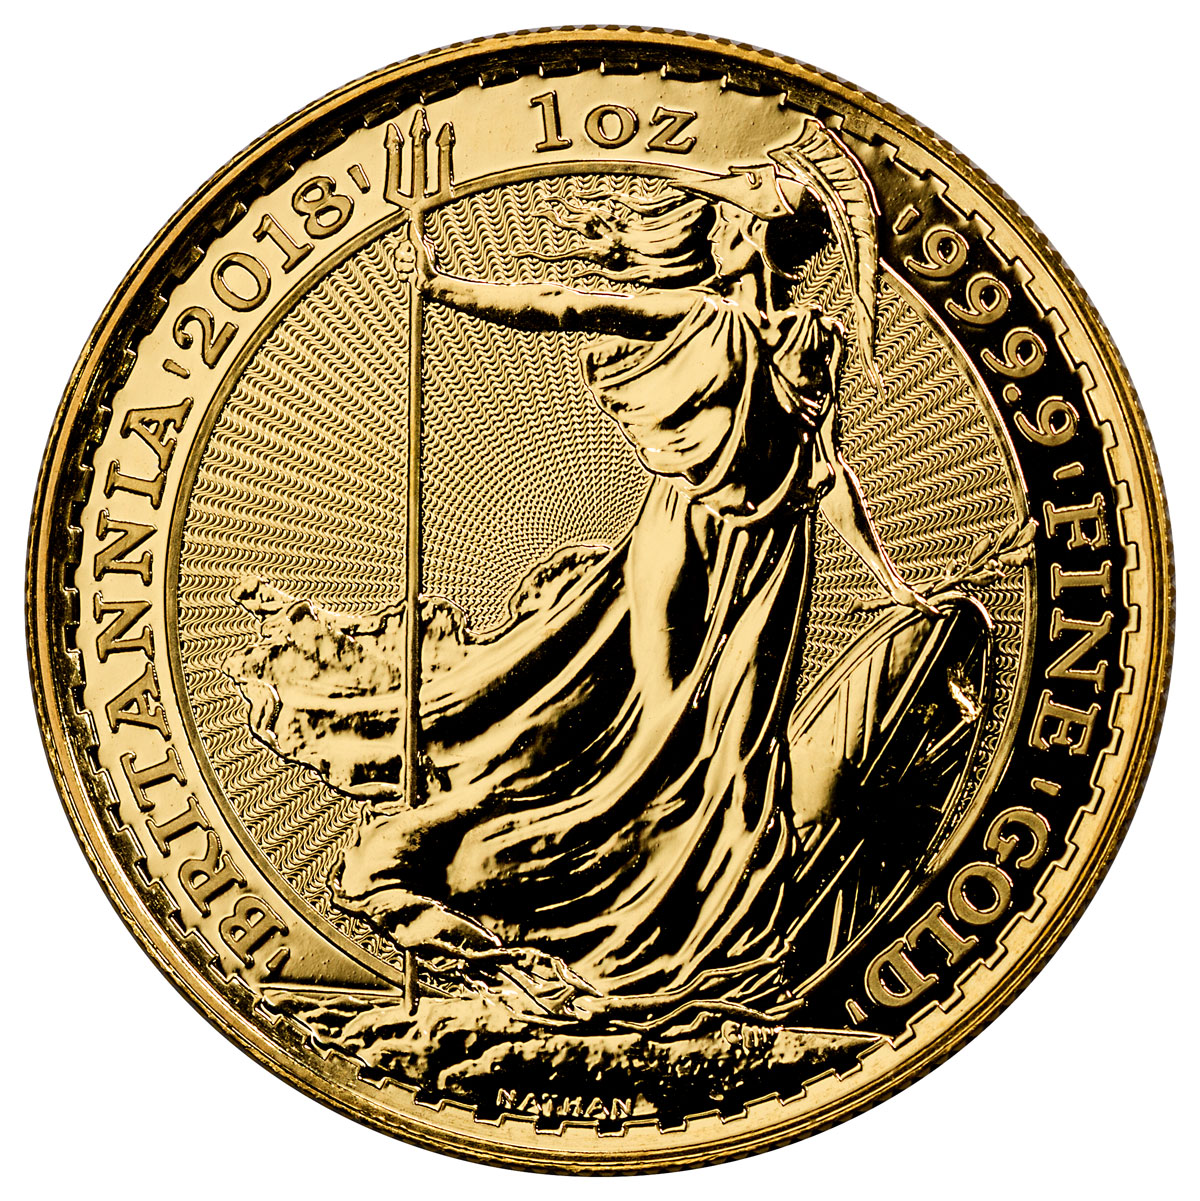 2018 Great Britain 1 oz Gold Britannia £100 Coin GEM BU